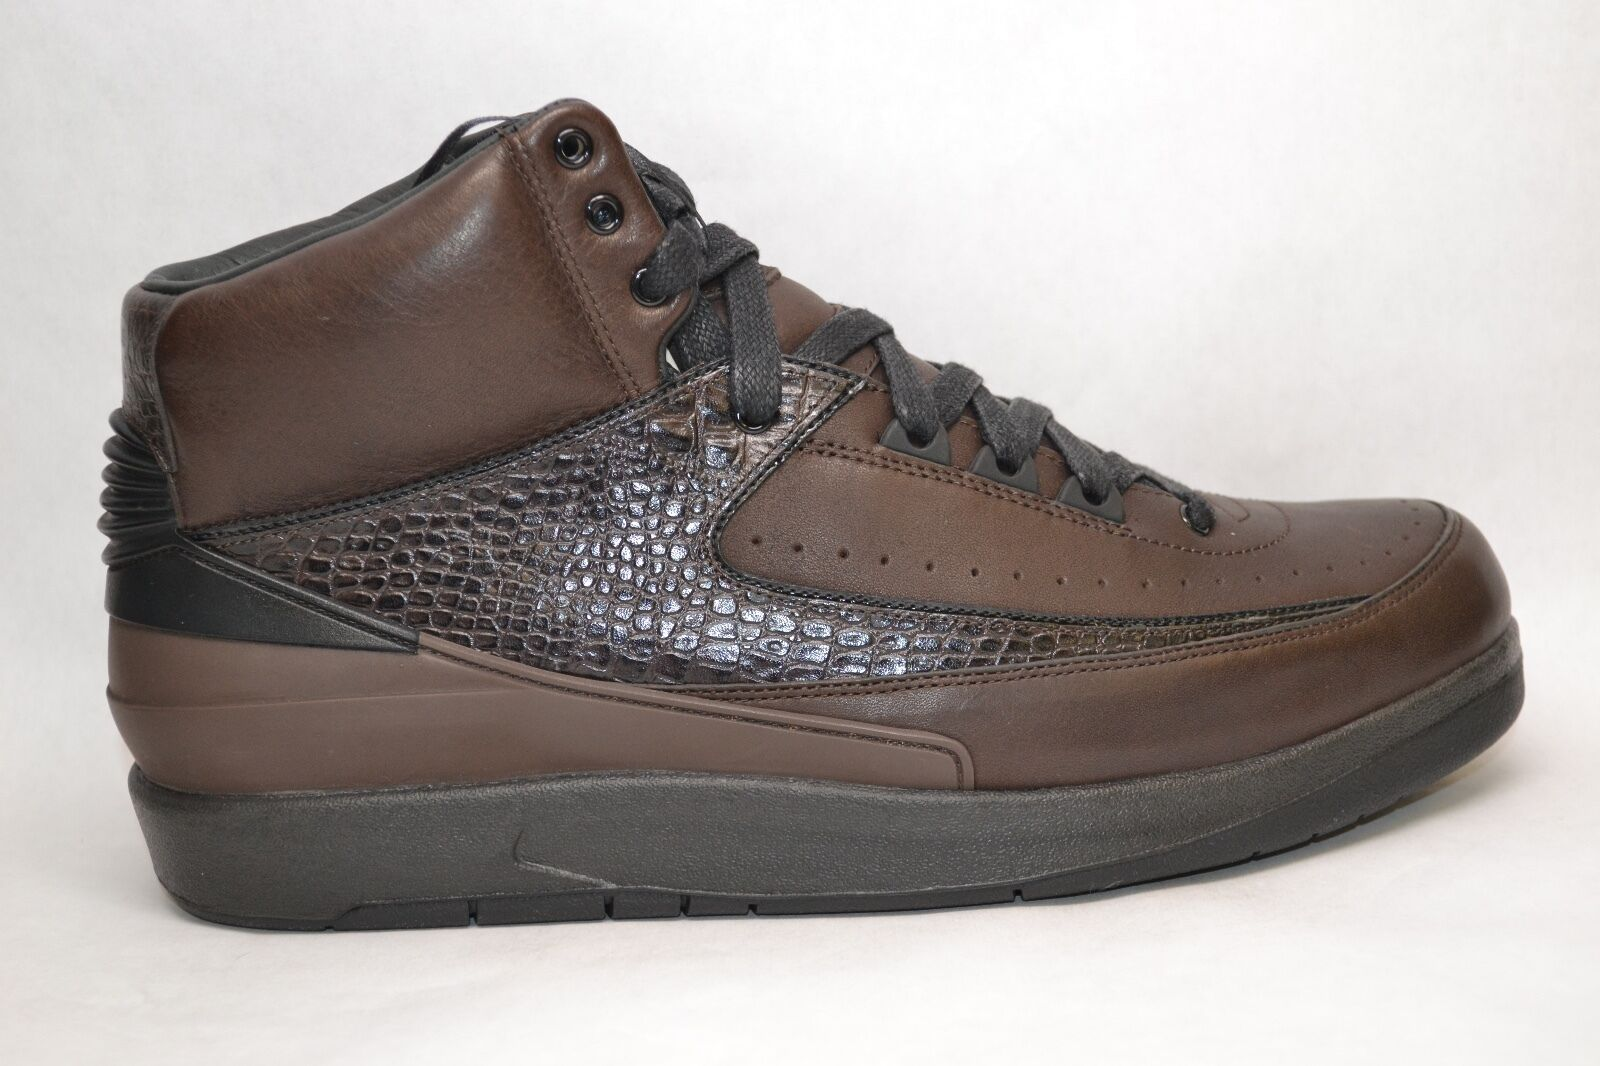 Air Jordan Retro 2 PREMIO BIN 23  DS Size 8.5 WITH BOX. 100% AUTHENTIC